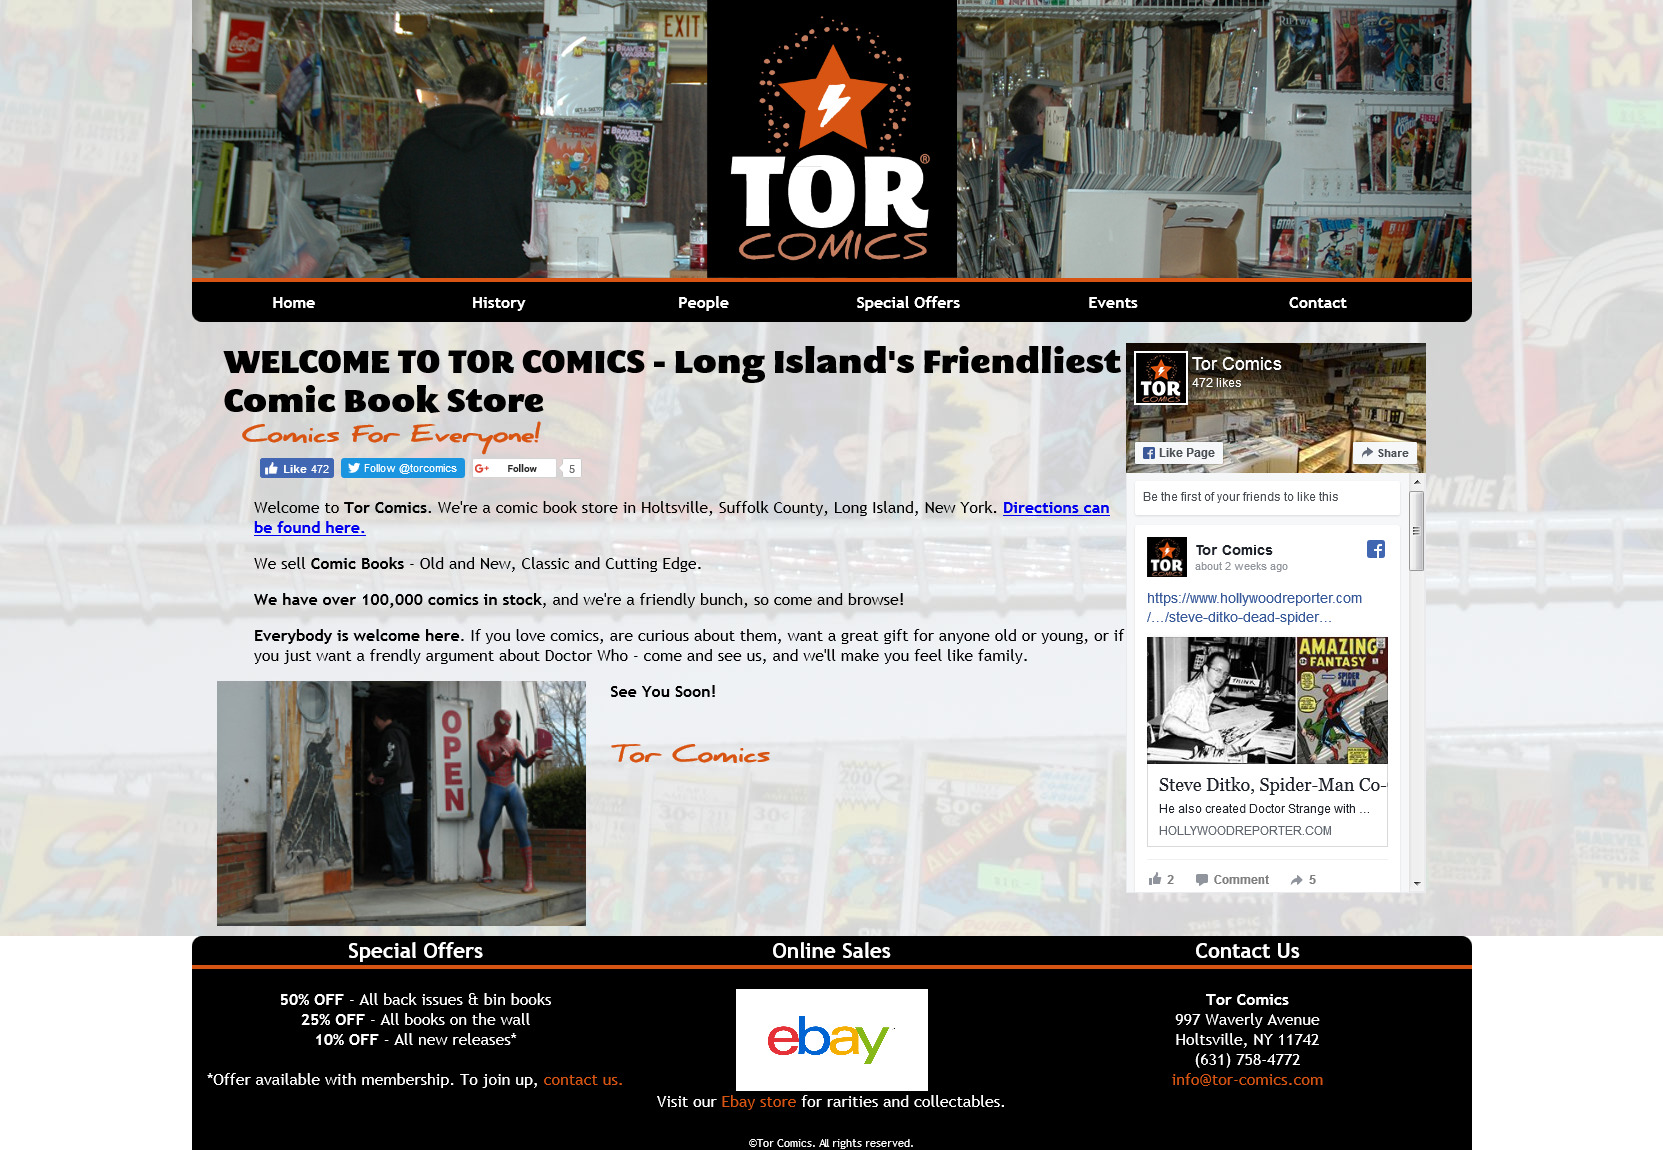 Tor Comics website built by Suffolk County Webmasters